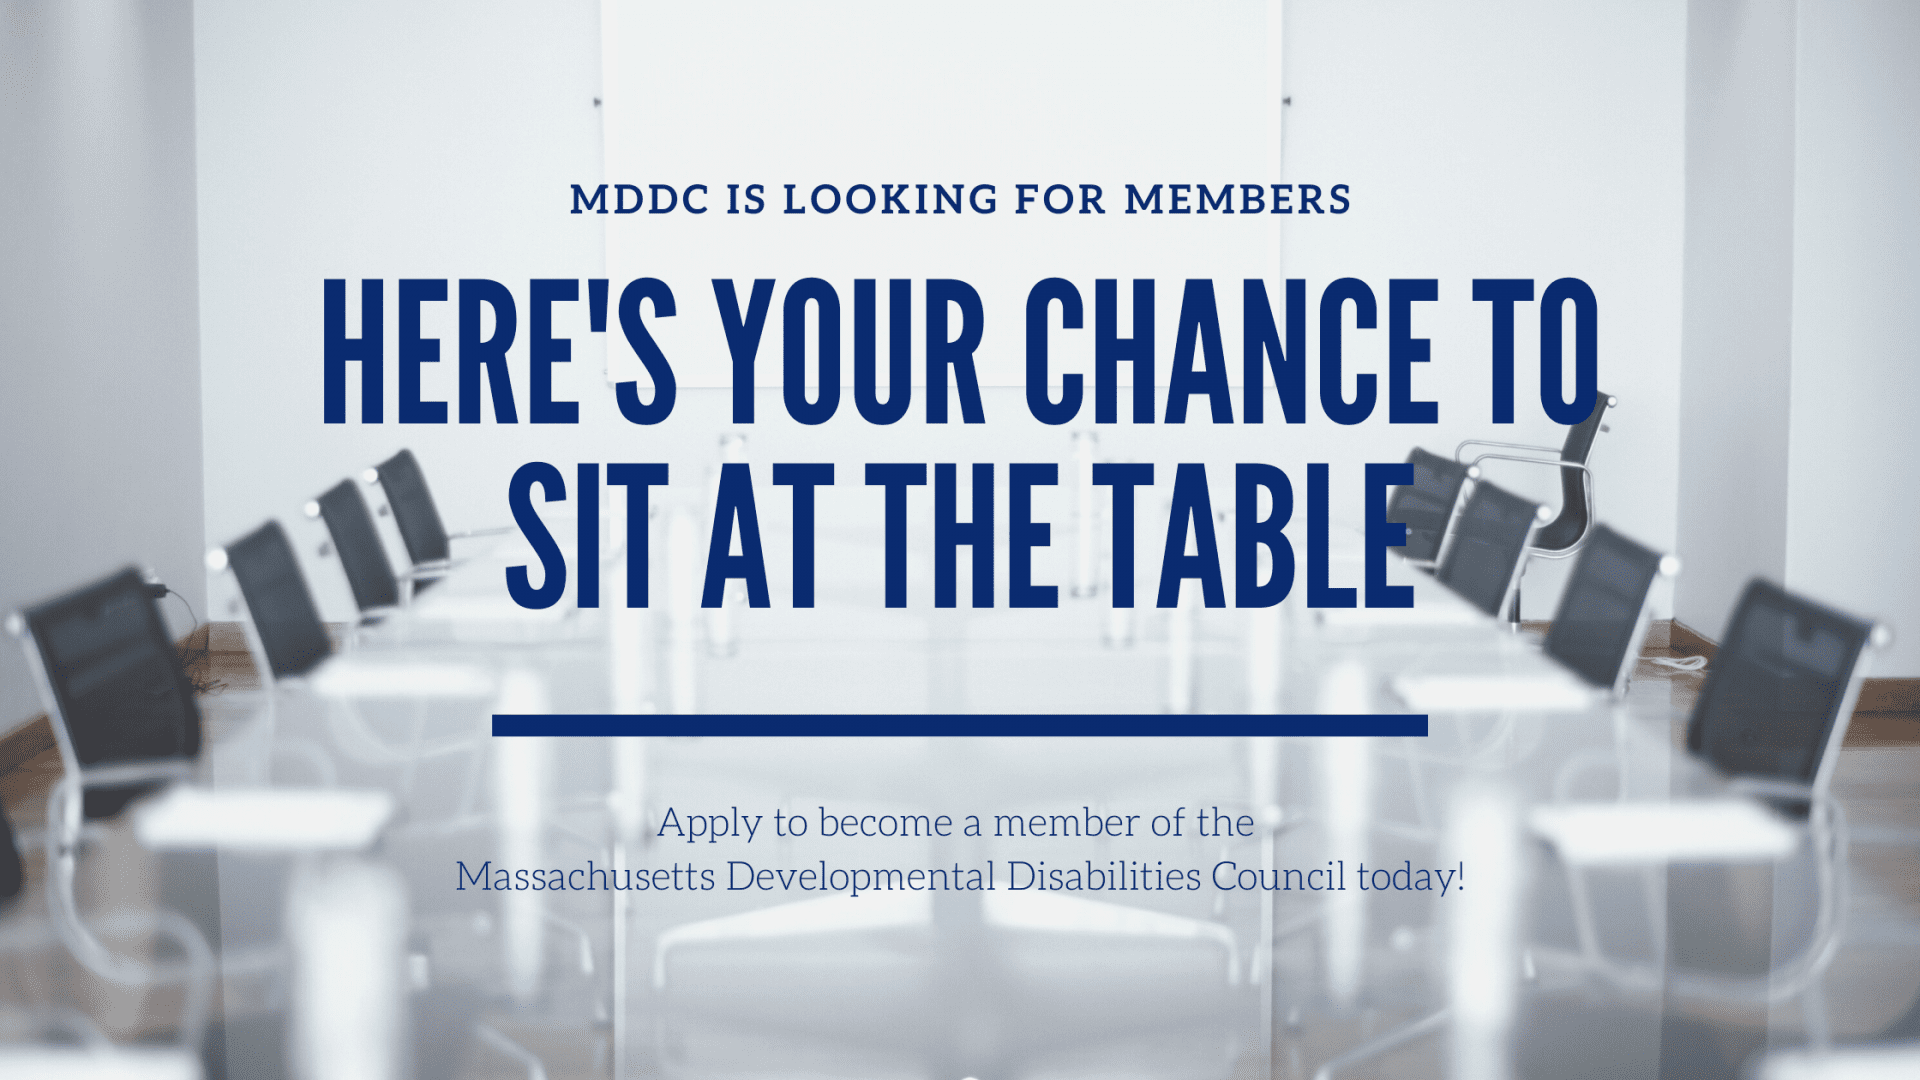 MDDC is looking for members